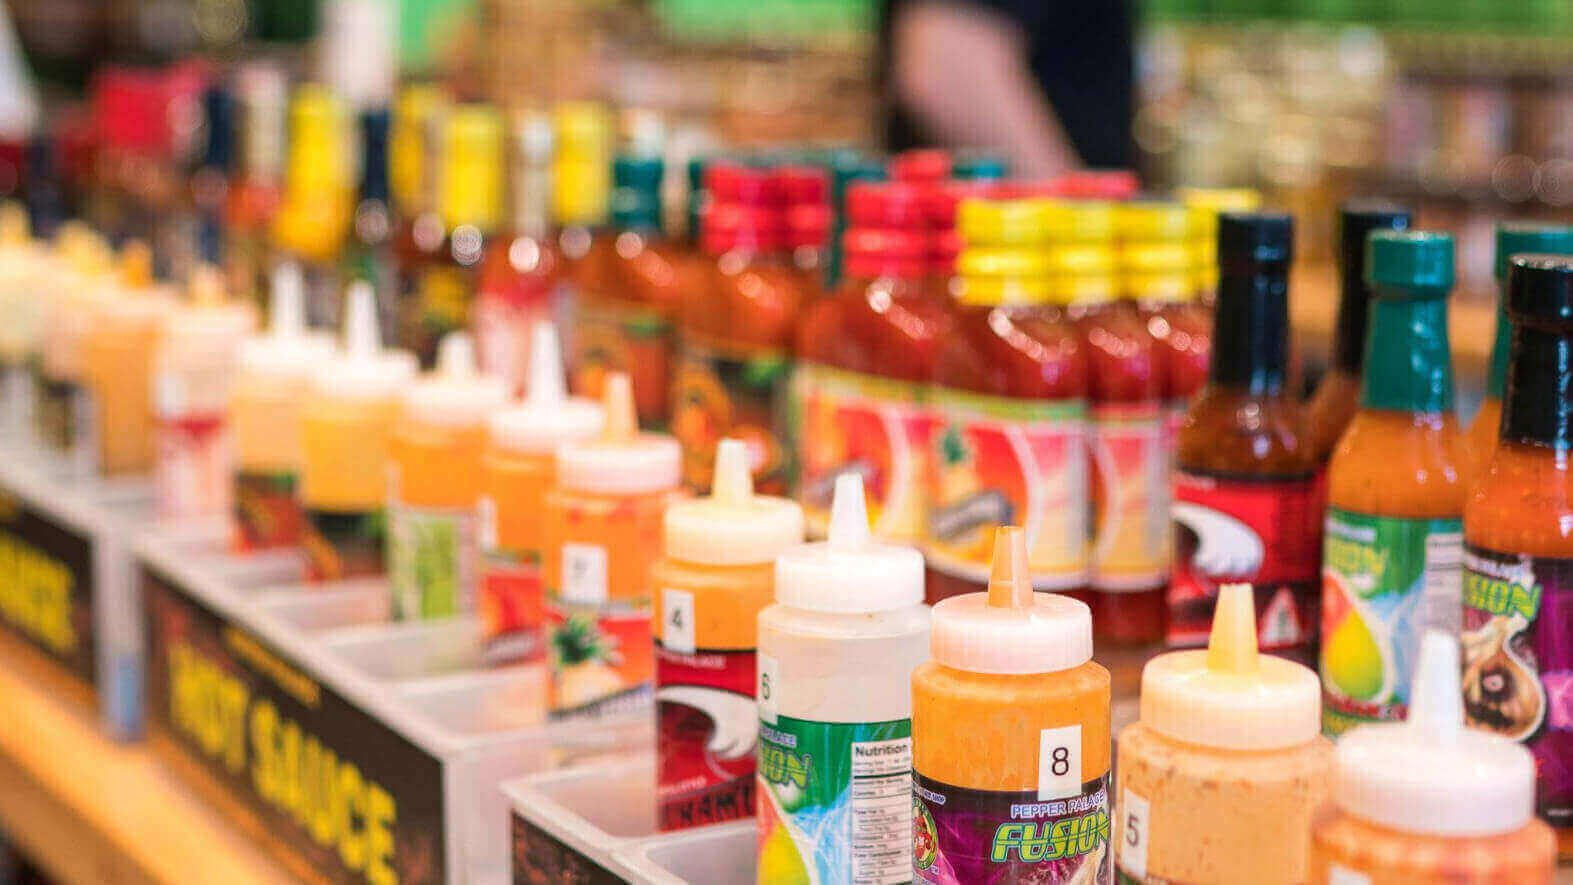 image showing bottles of hot sauce